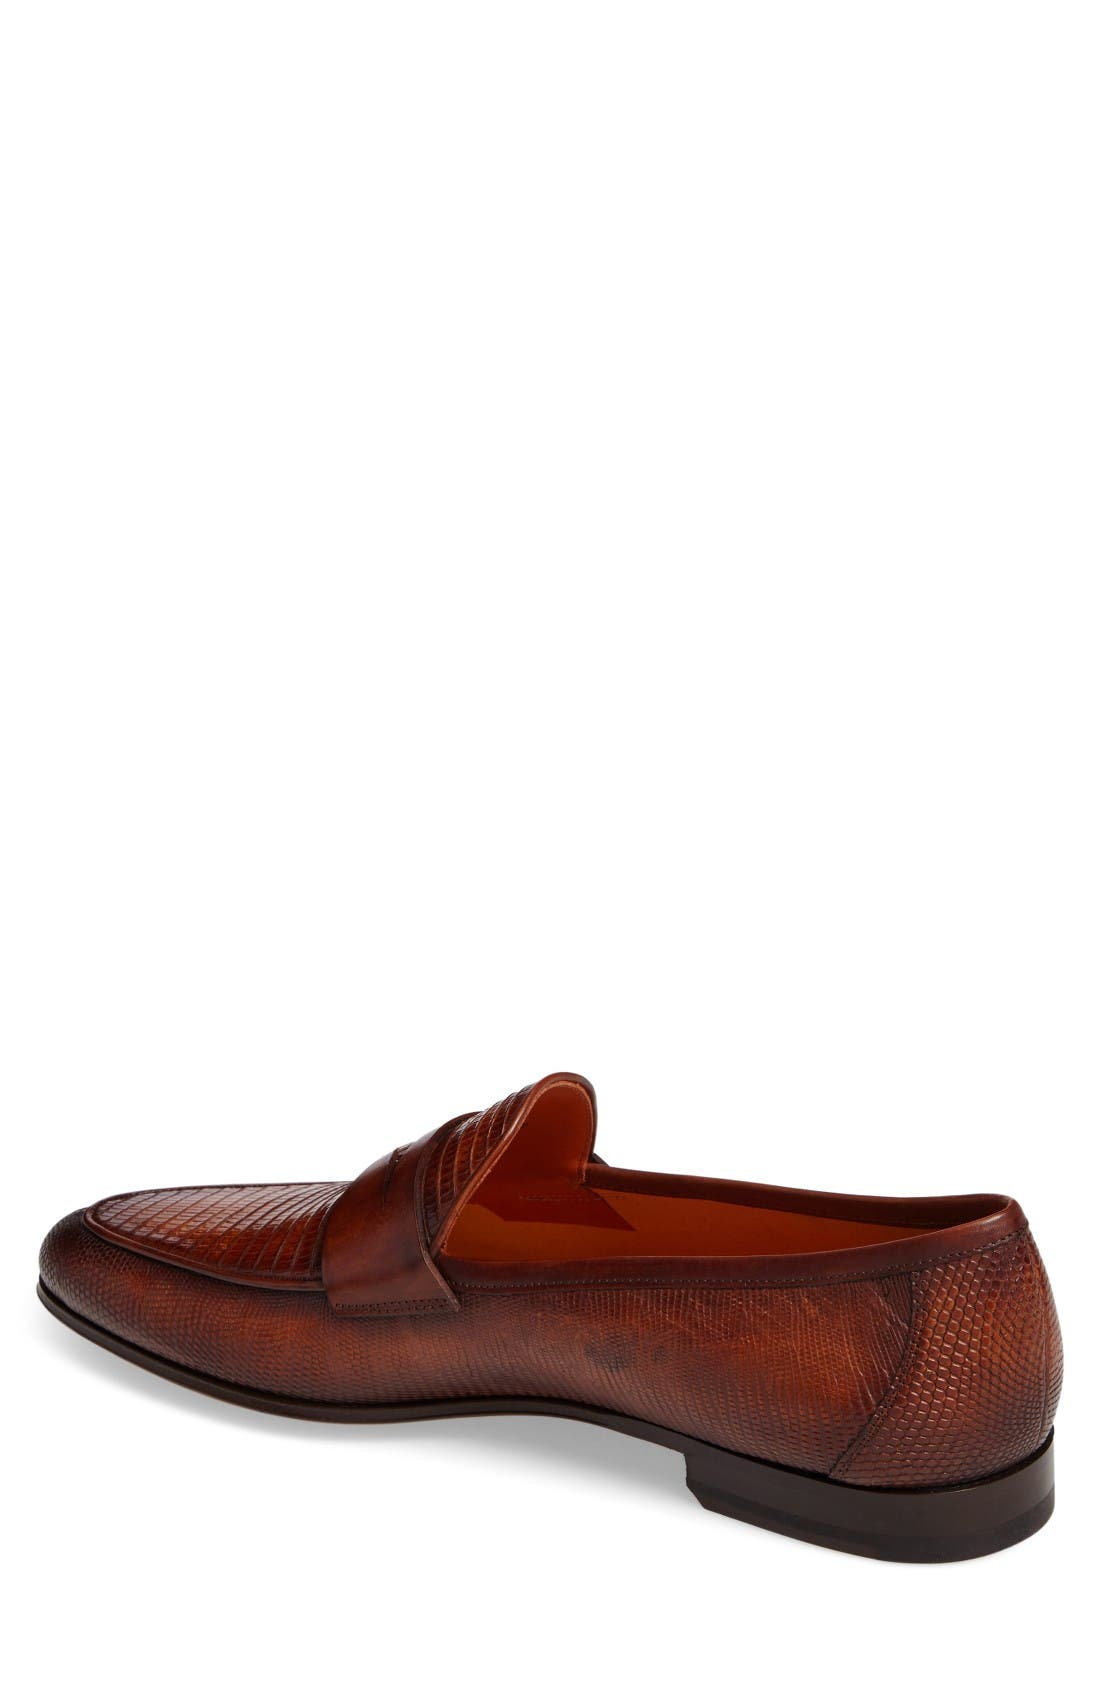 'Camerino' Lizard Penny Loafer,                             Alternate thumbnail 2, color,                             Cognac